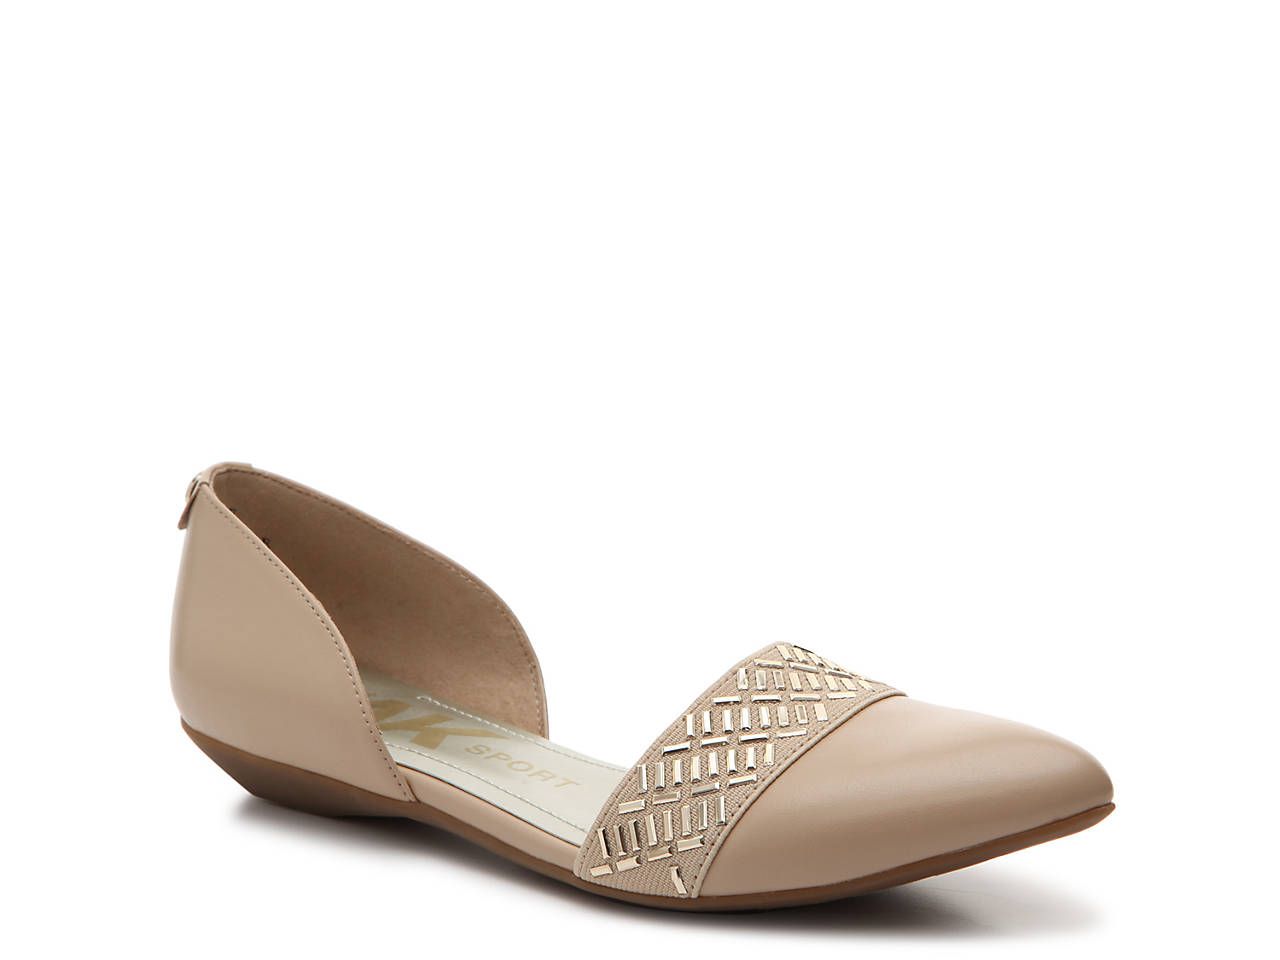 ecb104a9850 Anne Klein Sport Oma Flat Women s Shoes